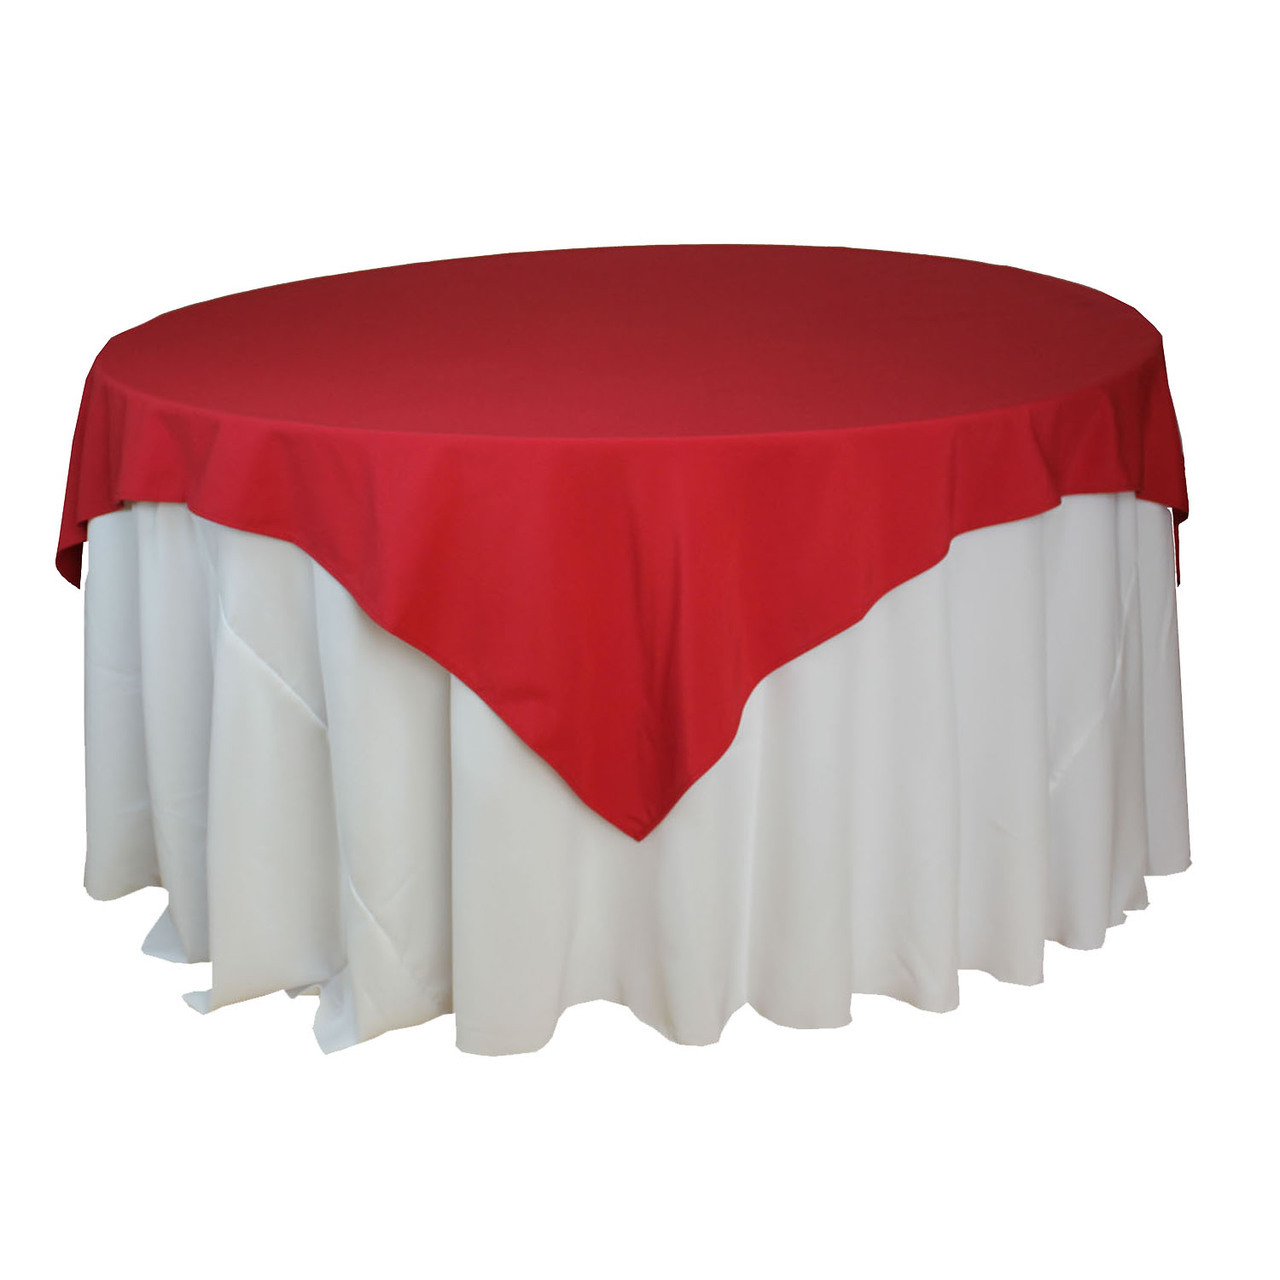 Image Result For Plastic Banquet Tables